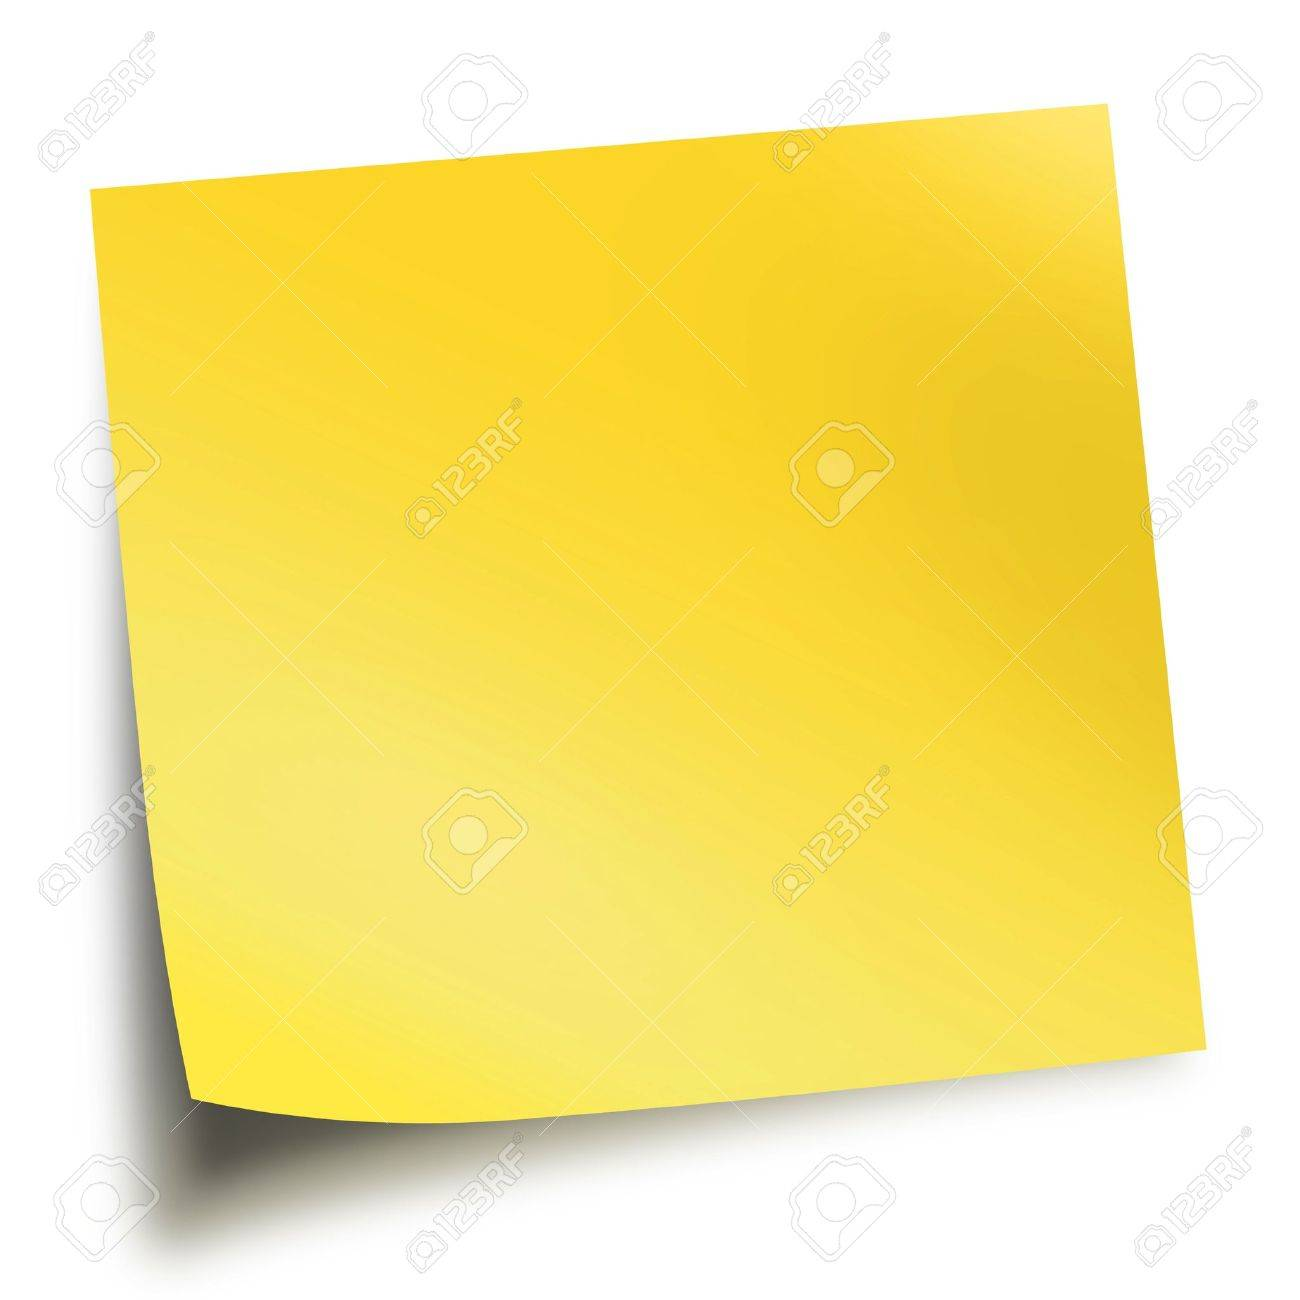 Yellow memo stick isolated on white background with soft shadow Stock Photo - 9109180